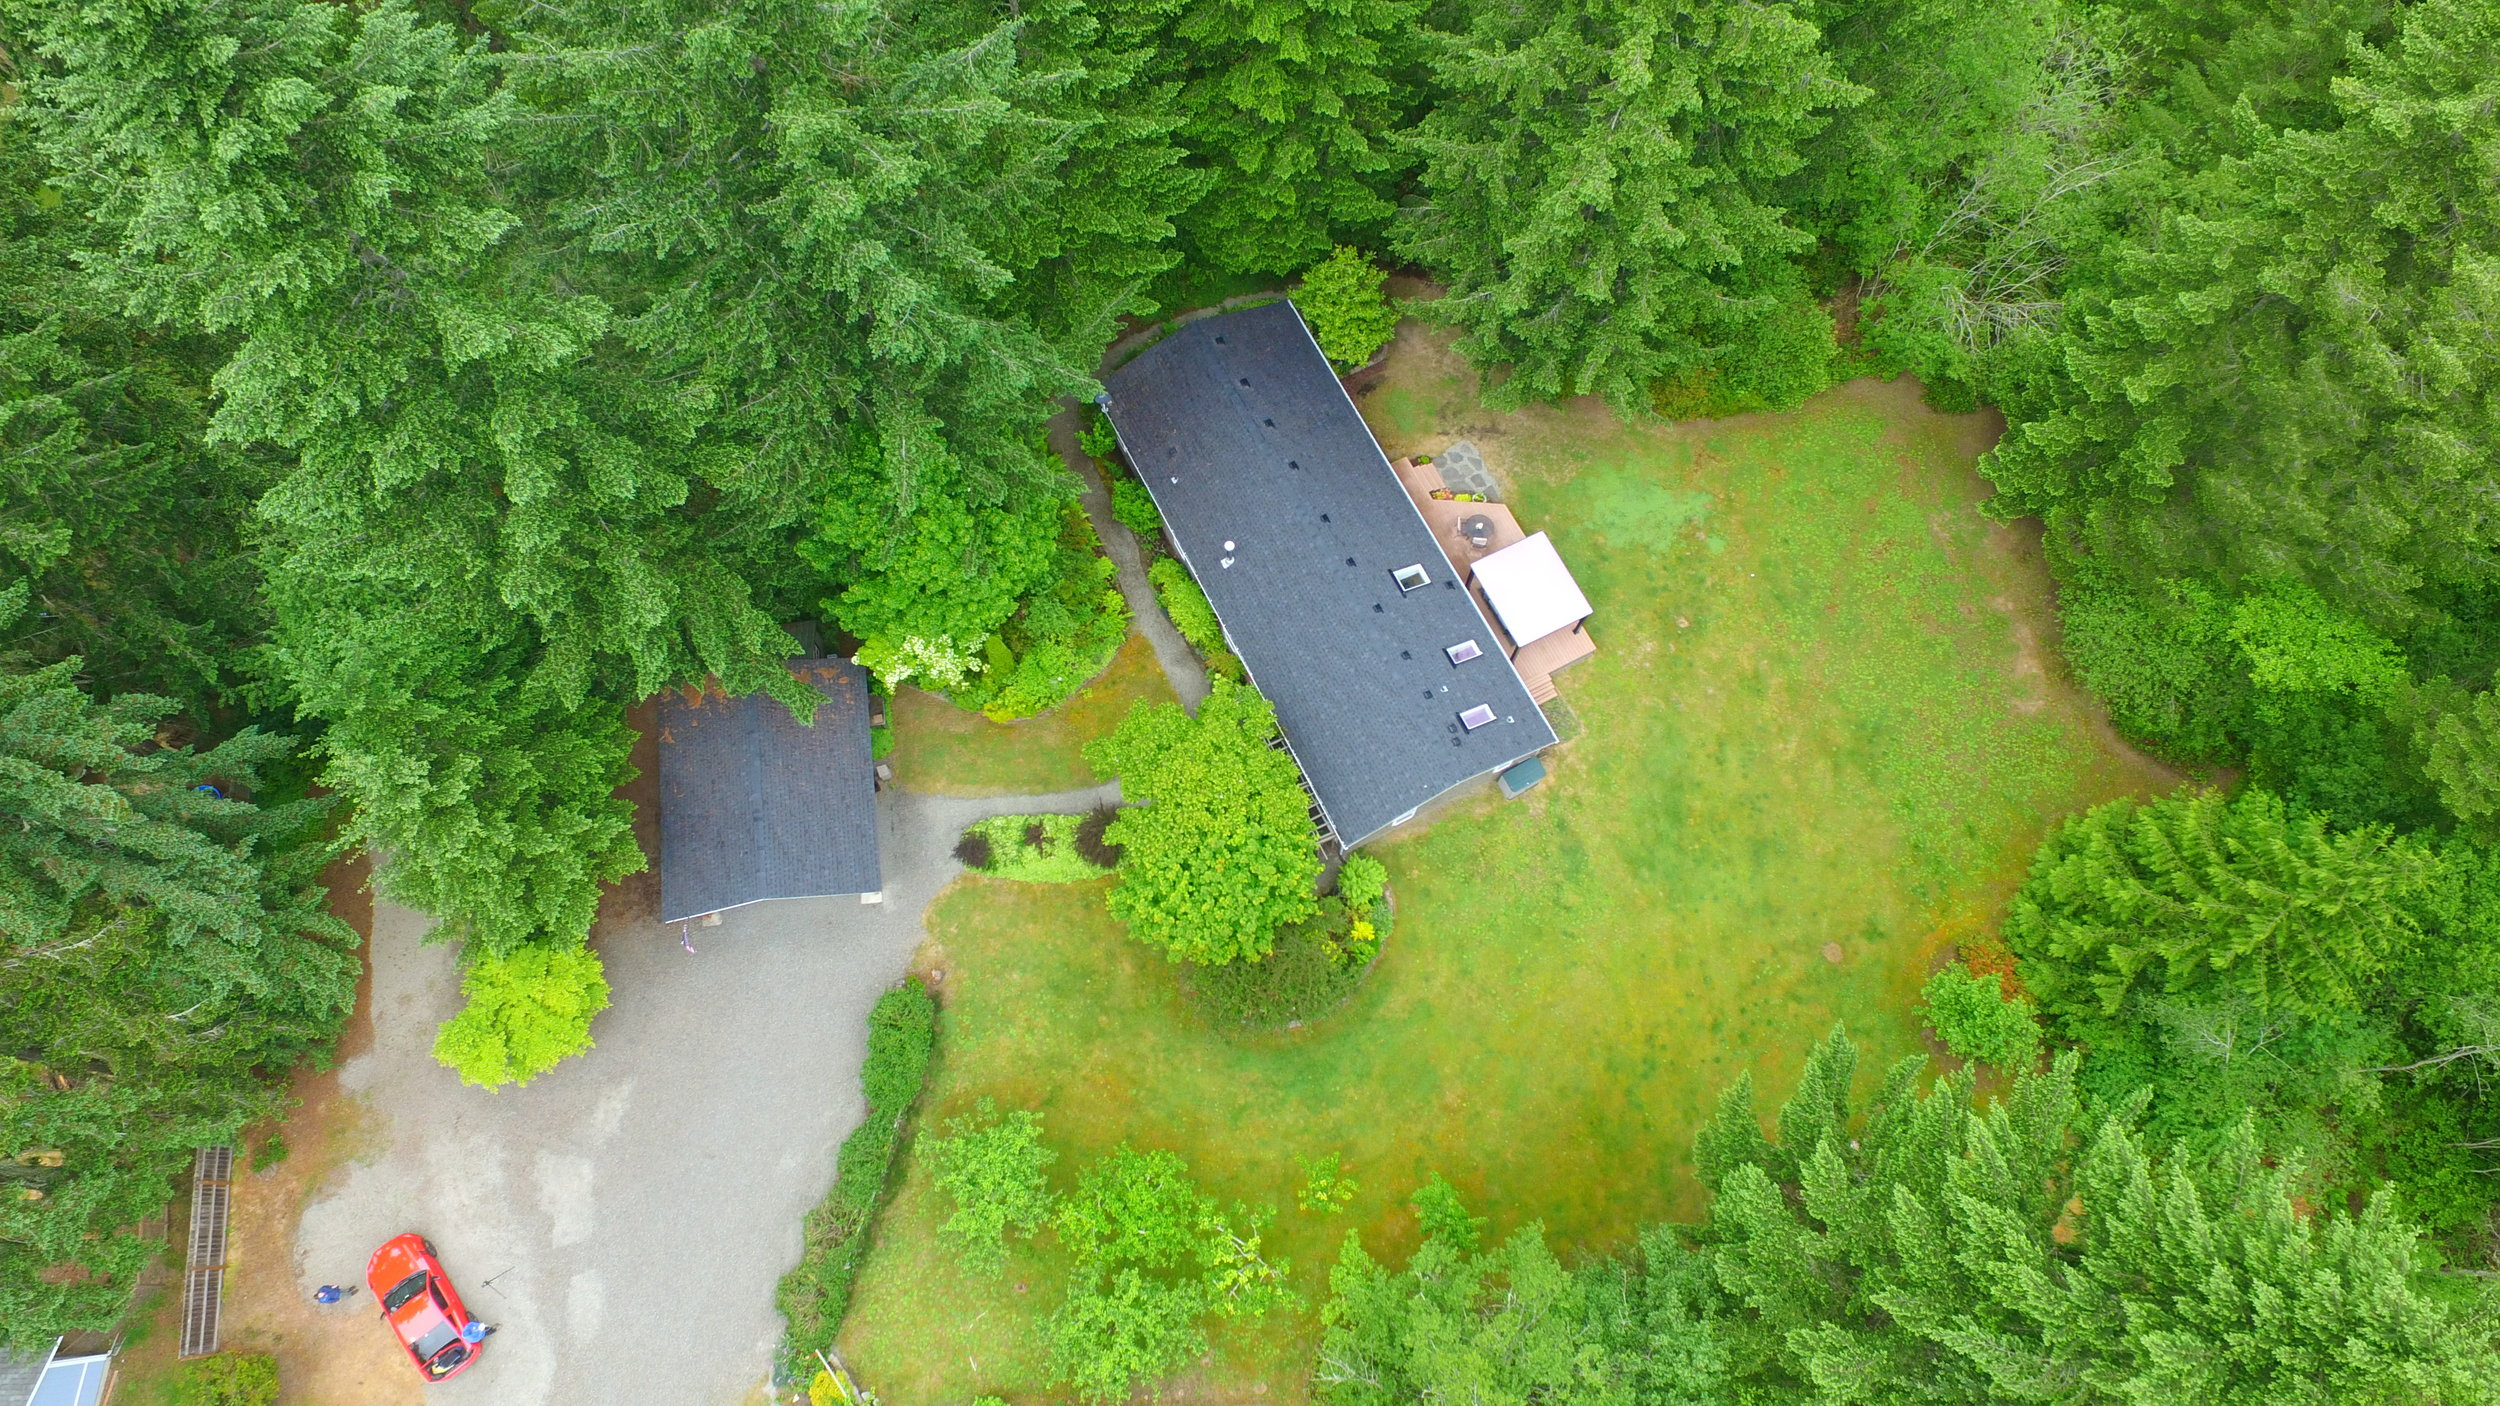 An aerial view of this 2.8 acre property with wooded trails, orchard, spacious lawn, RV parking, and a great view of that roof too.